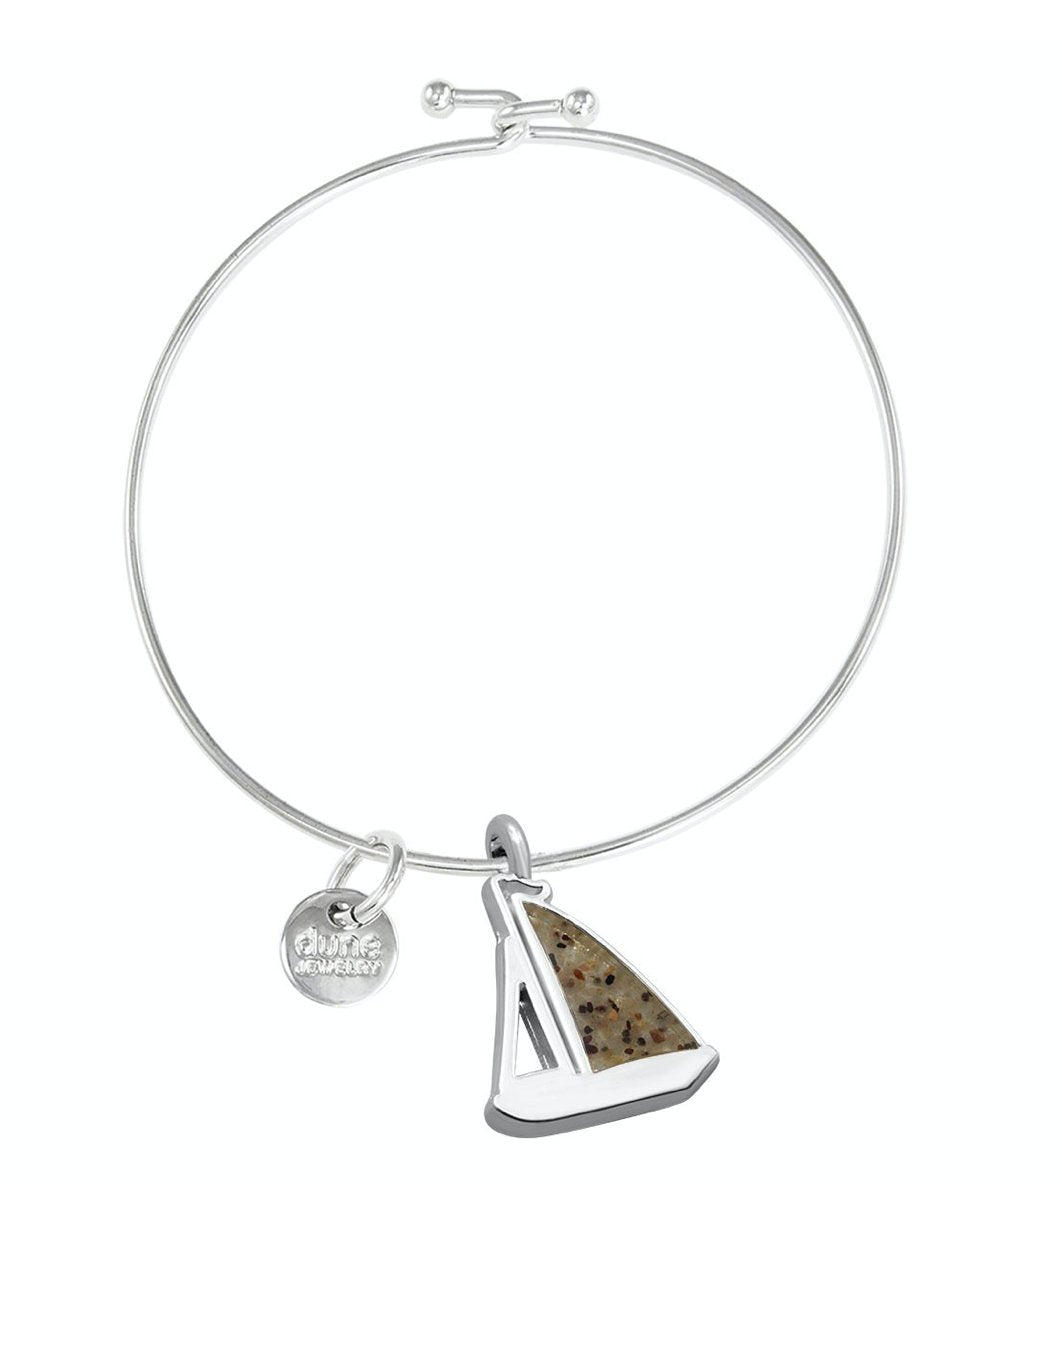 BANG33 BANGLE SAILBOAT - Molly's! A Chic and Unique Boutique